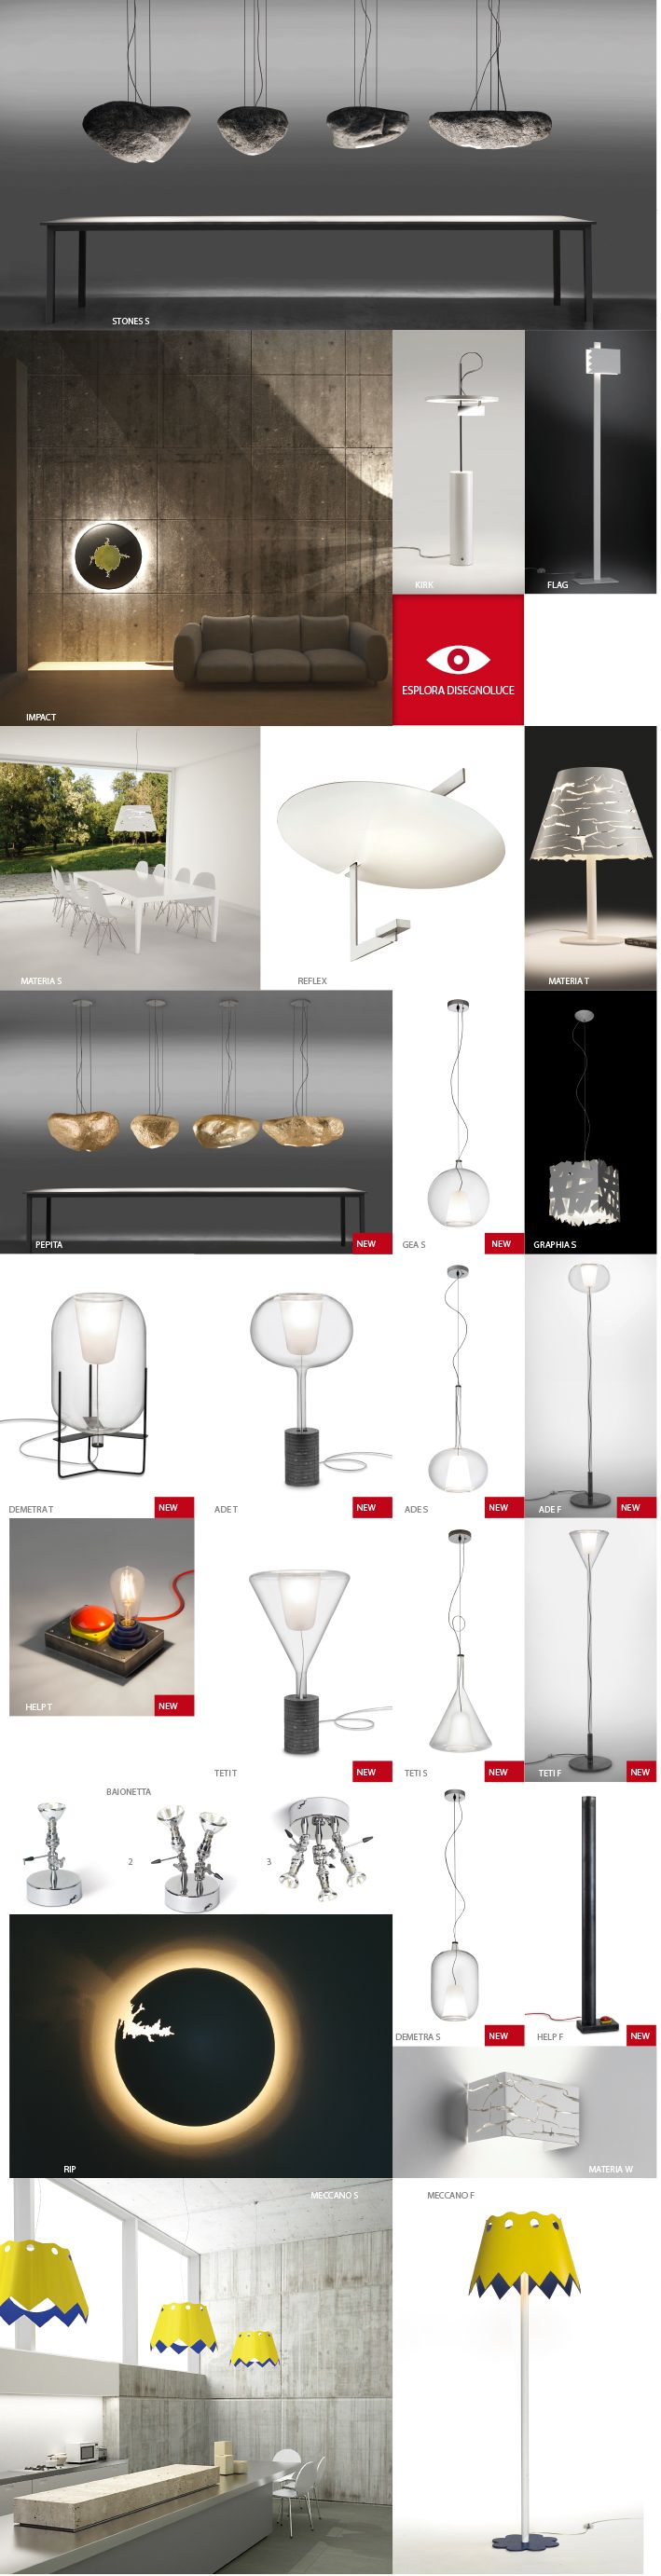 25 best Lampen images on Pinterest | Light design, Light fixtures ...